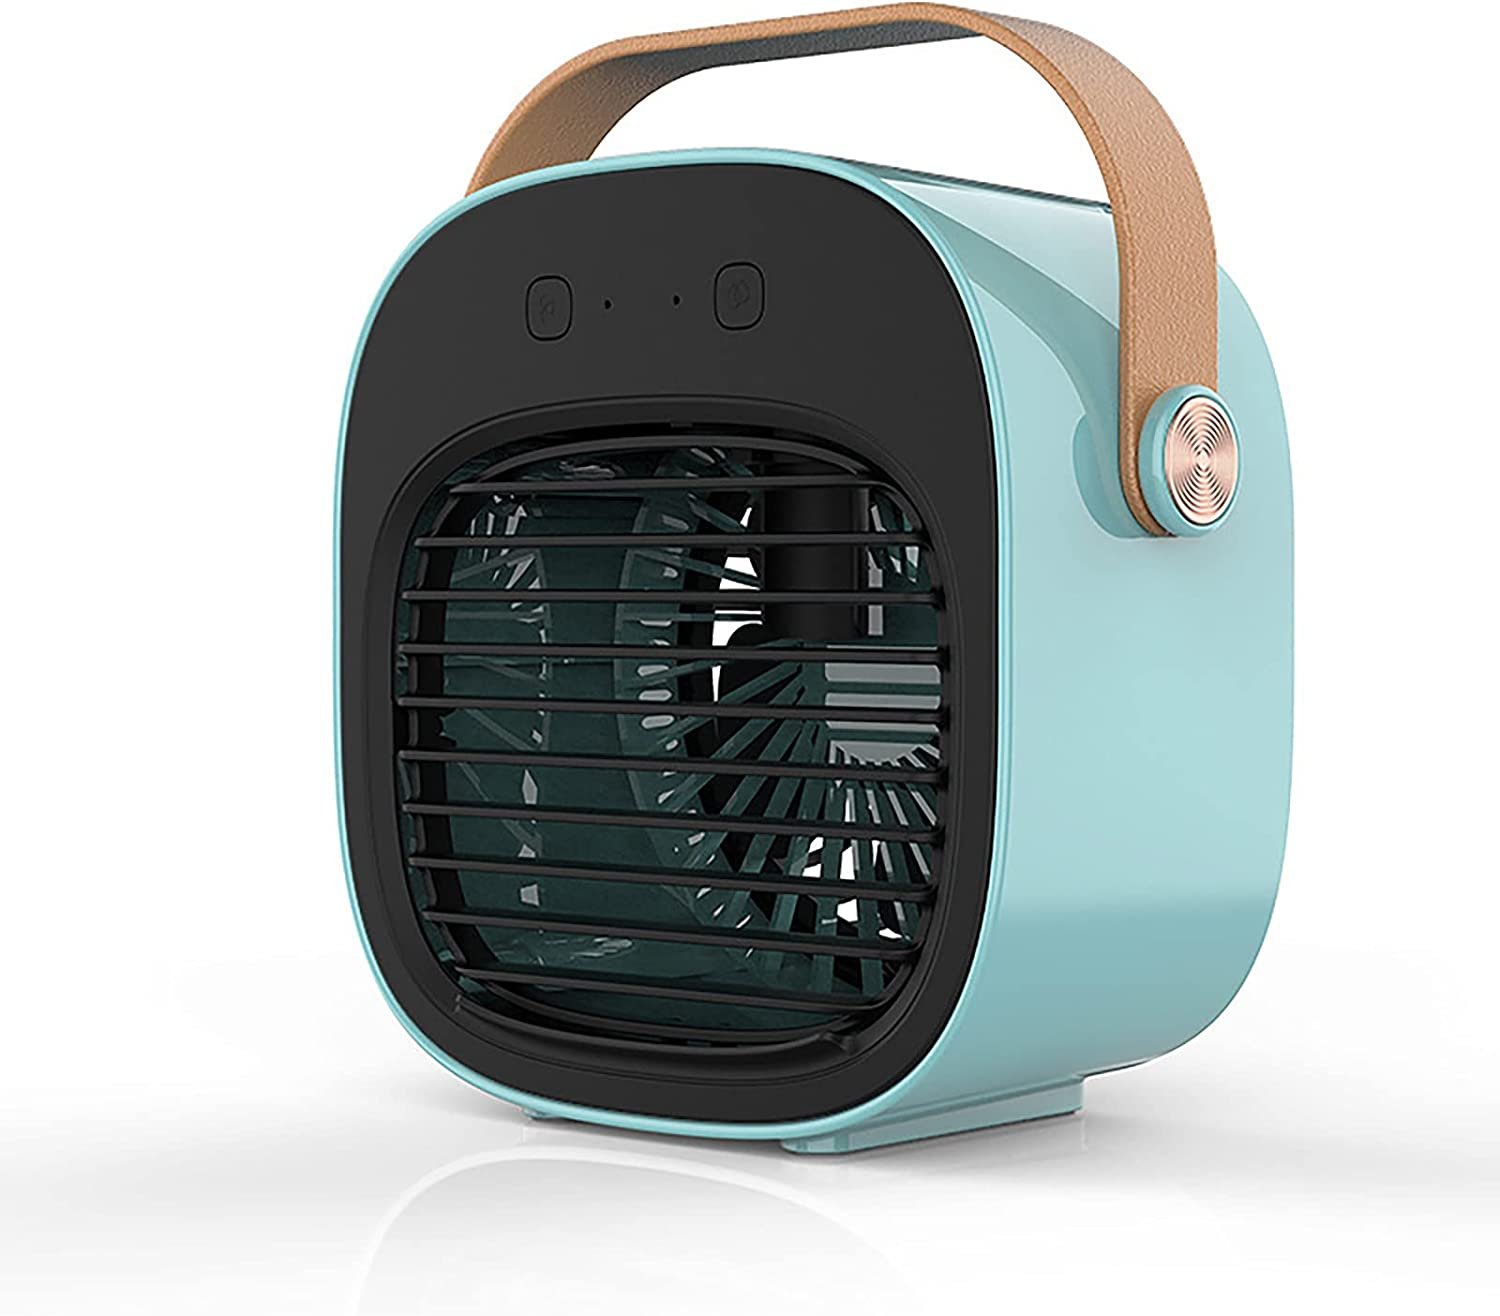 Spaver Portable Air Translated Conditioner Personal Evaporative Price reduction Cooler